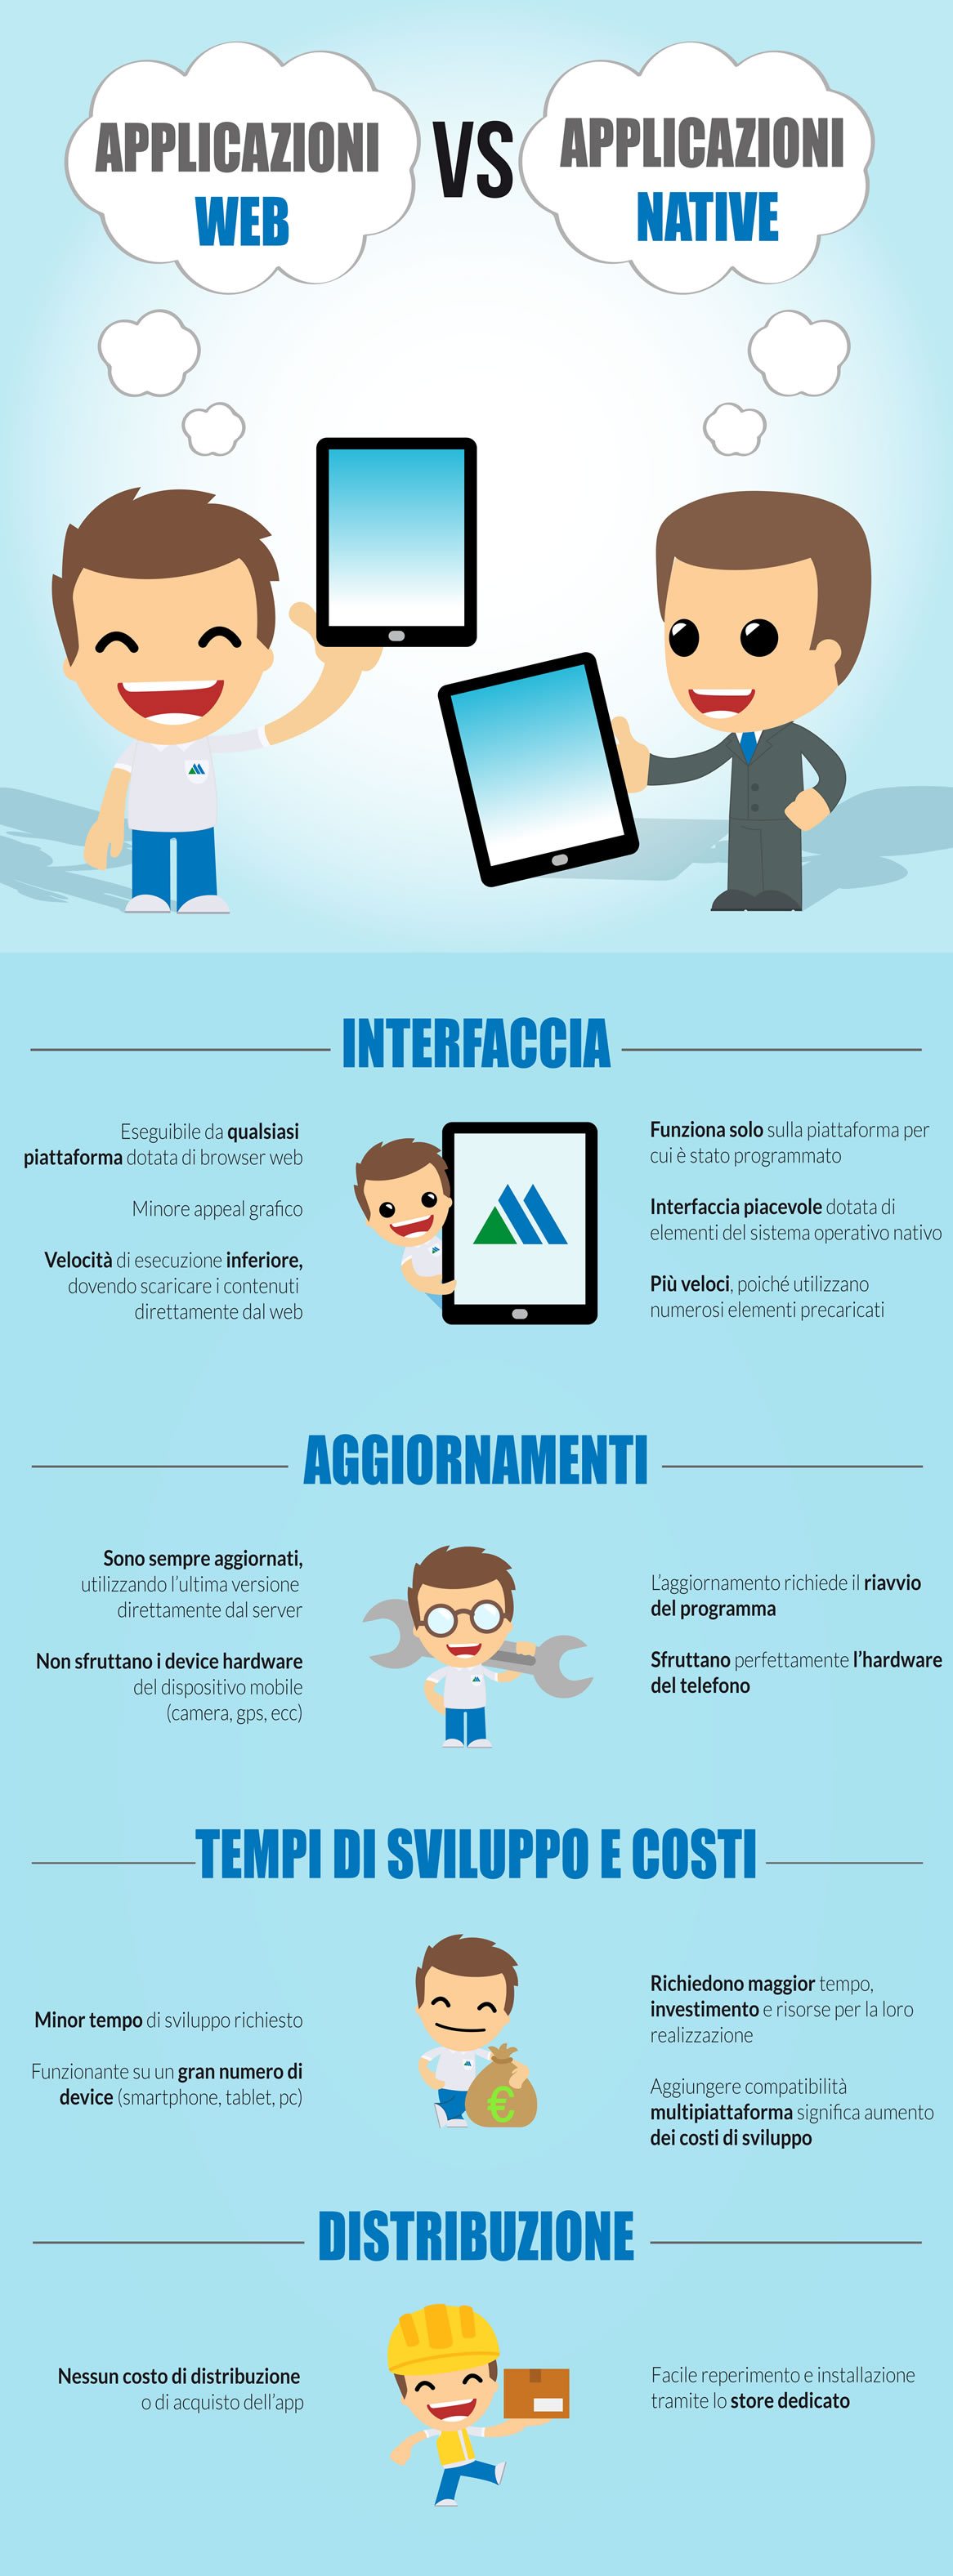 Web application vs web app nativa